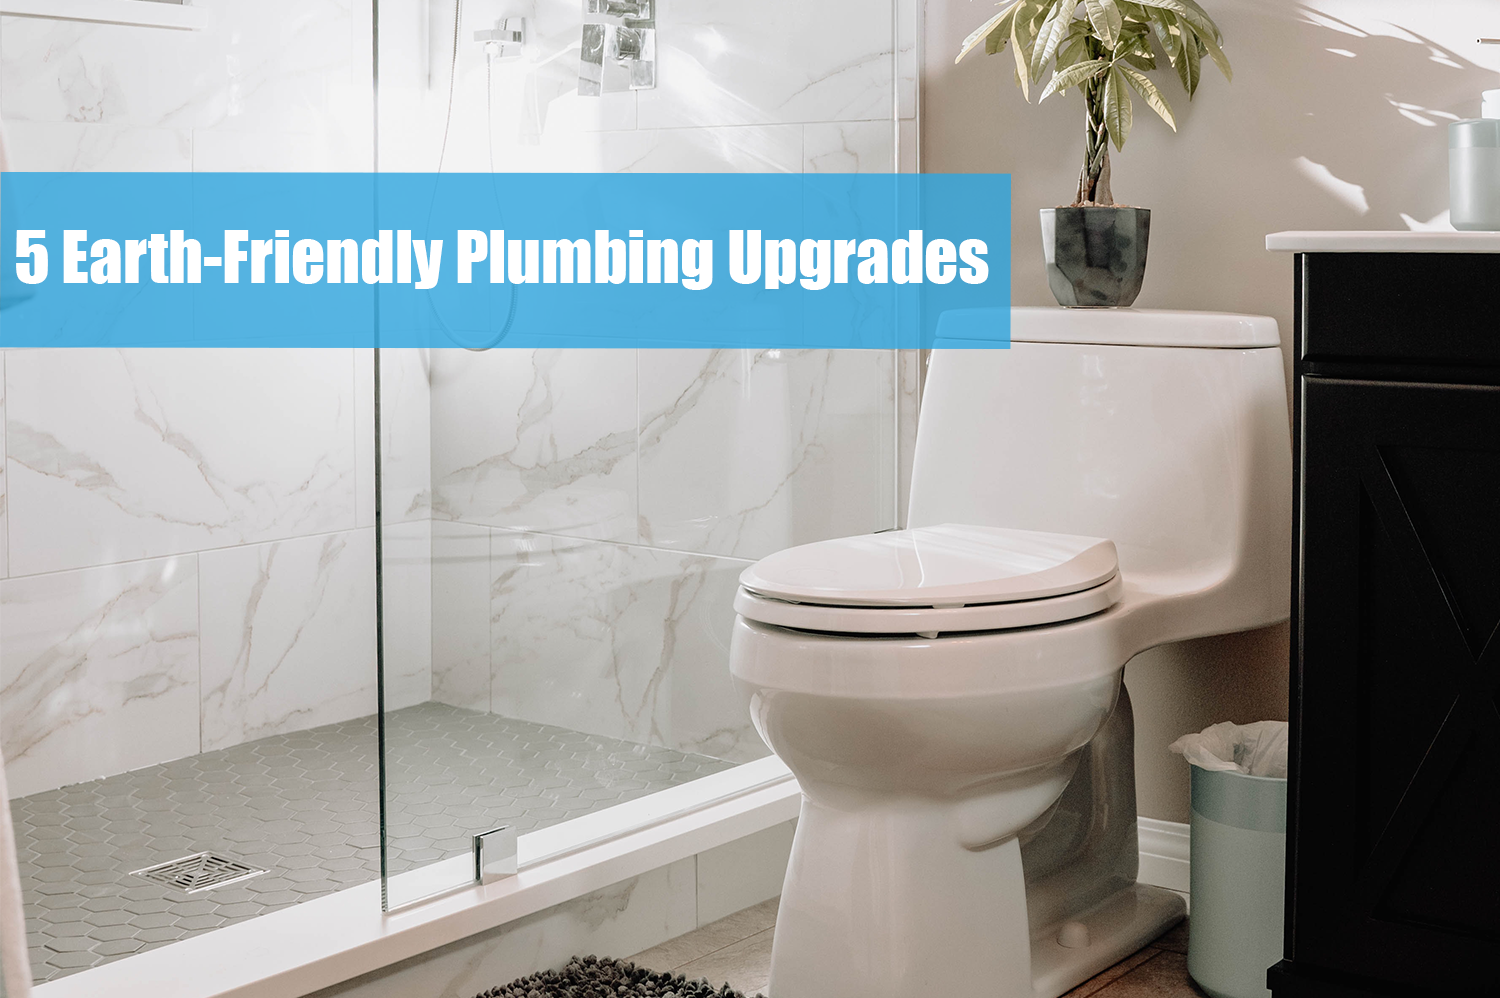 Clean bathroom with an older white toilet, an easy plumbing upgrade to save the homeowner water.